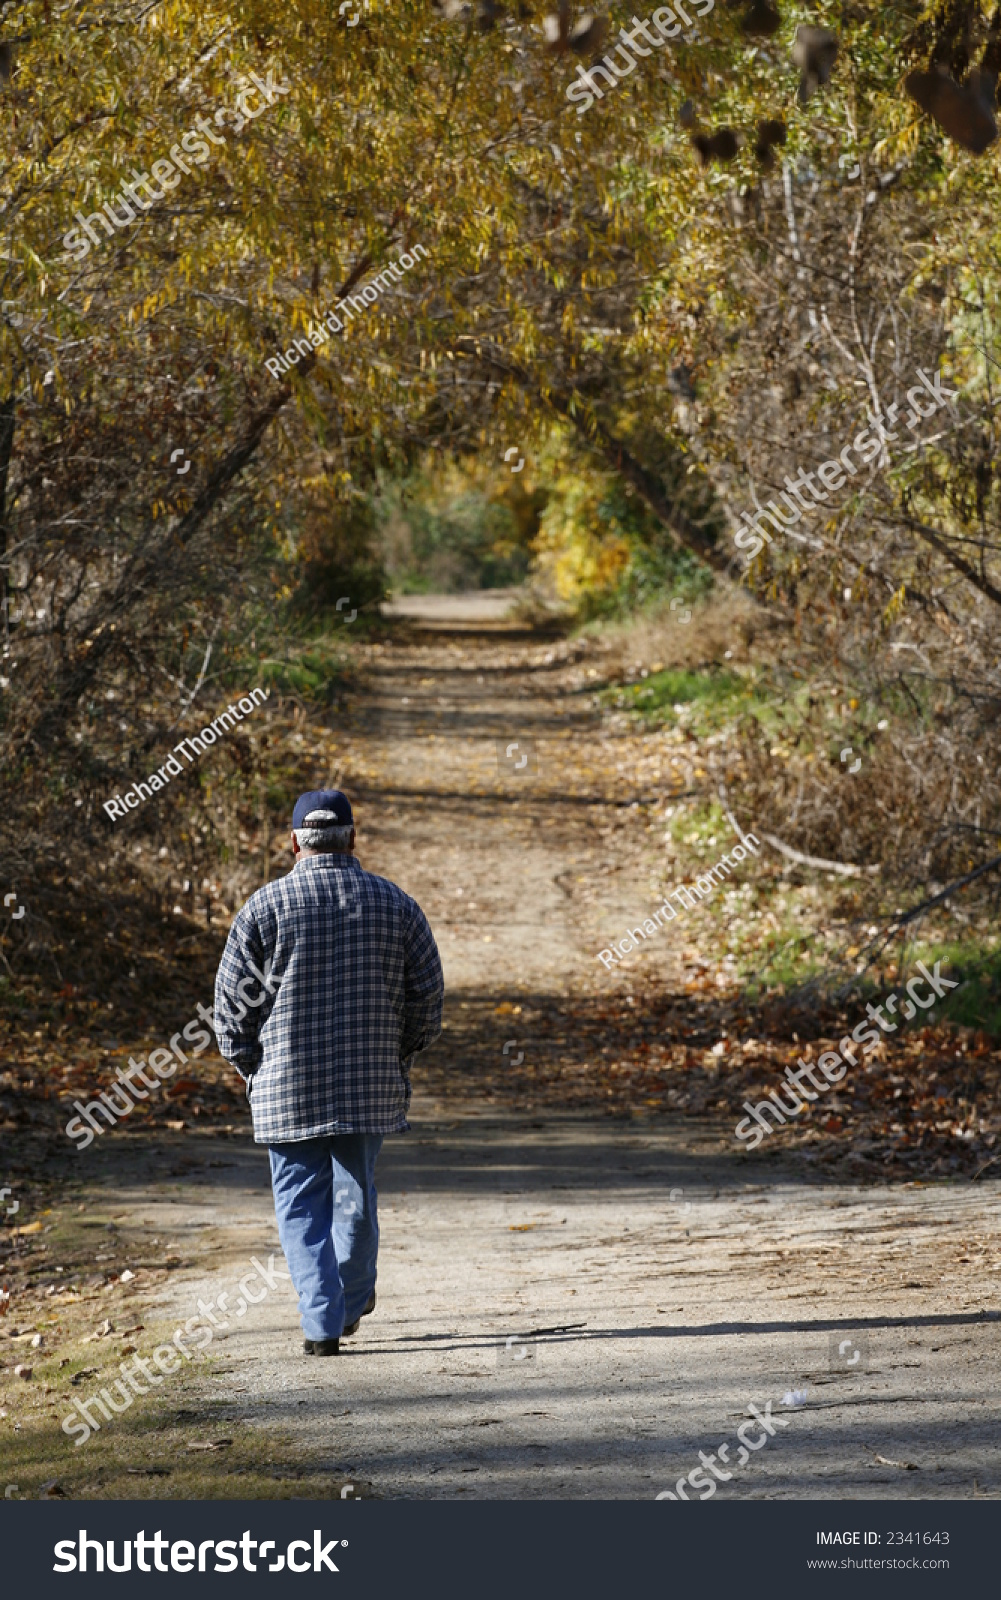 Man Walking Down Dirt Path Surrounded Stock Photo 2341643